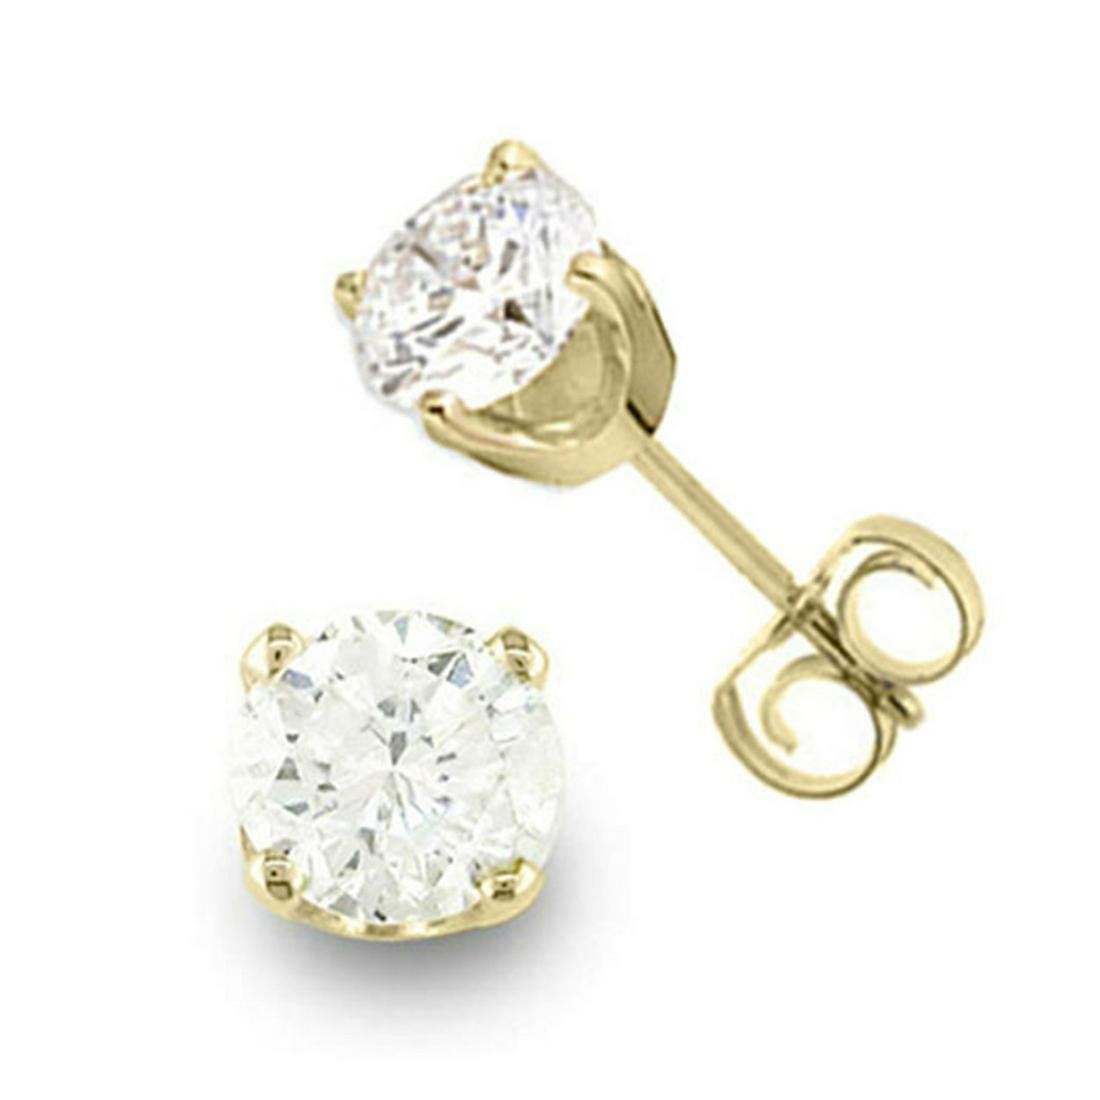 0.50 ctw VS/SI Diamond Stud Earrings 14K Yellow Gold -